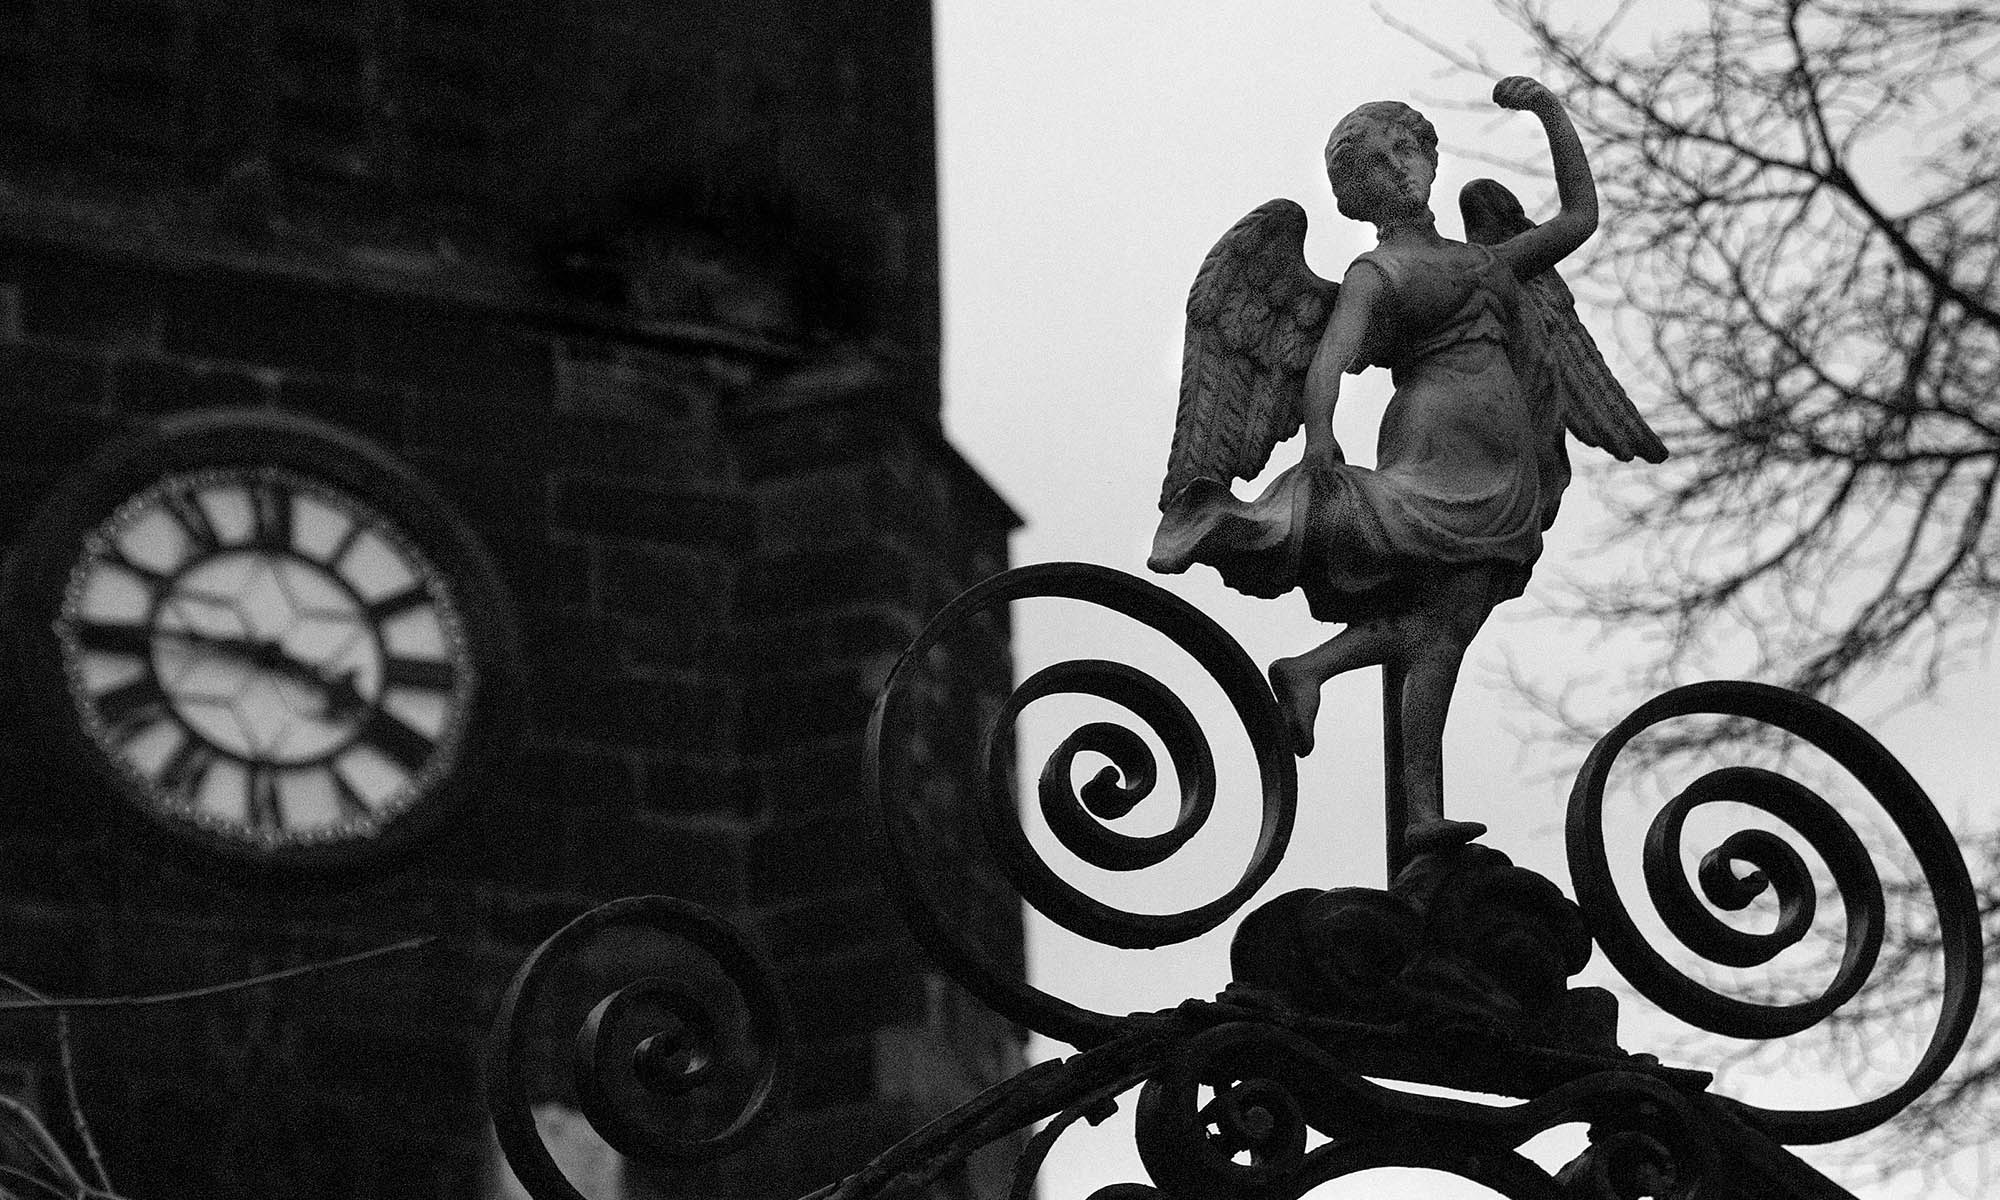 Church Clock and Statue detail